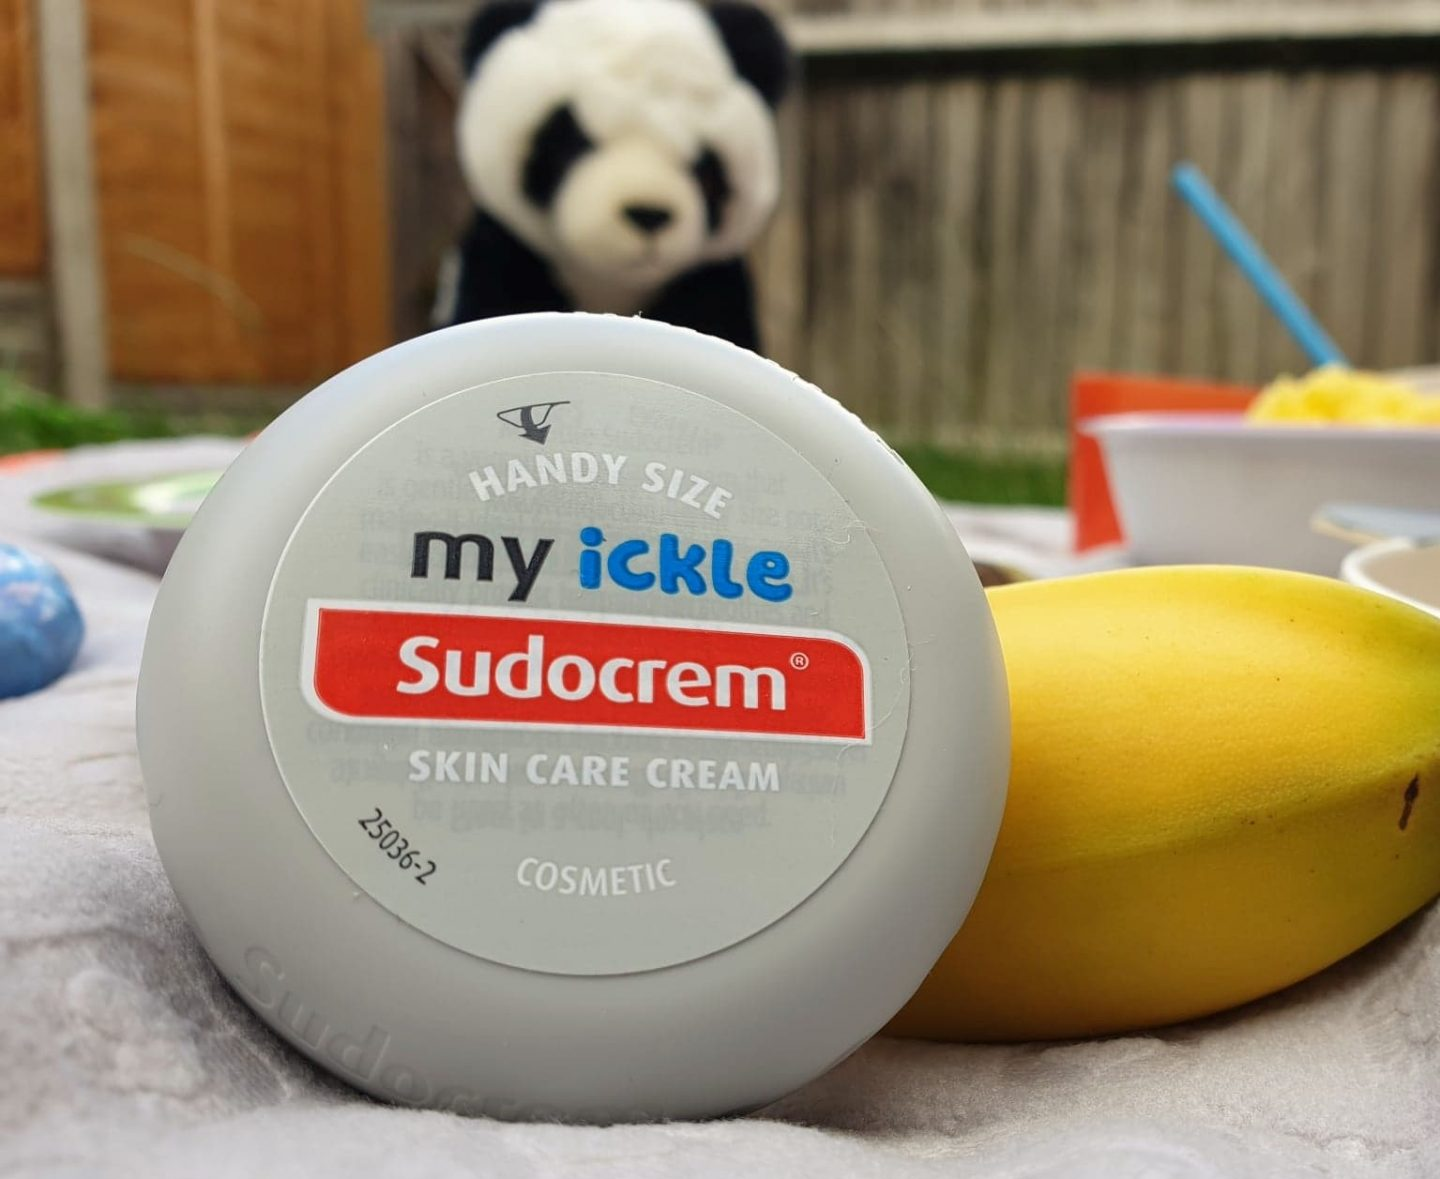 My ickle Sudocrem